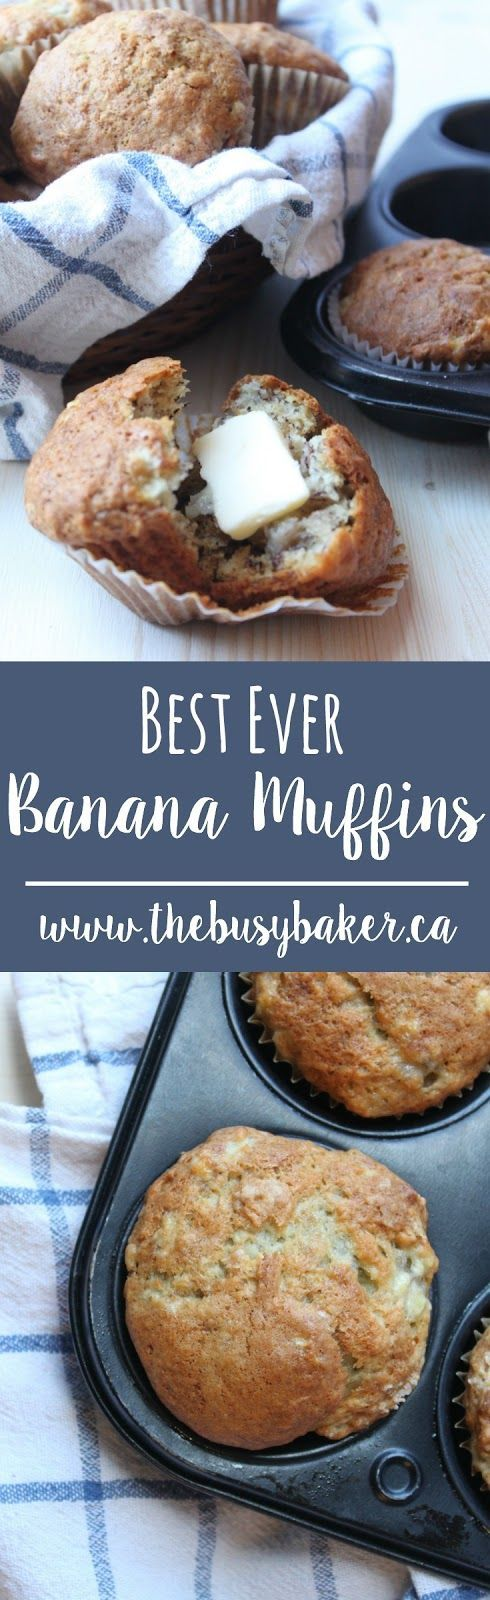 These Best Ever Banana Muffins have been pinned over 30k times! They really are the best recipe! Quick and easy and SO delicious!